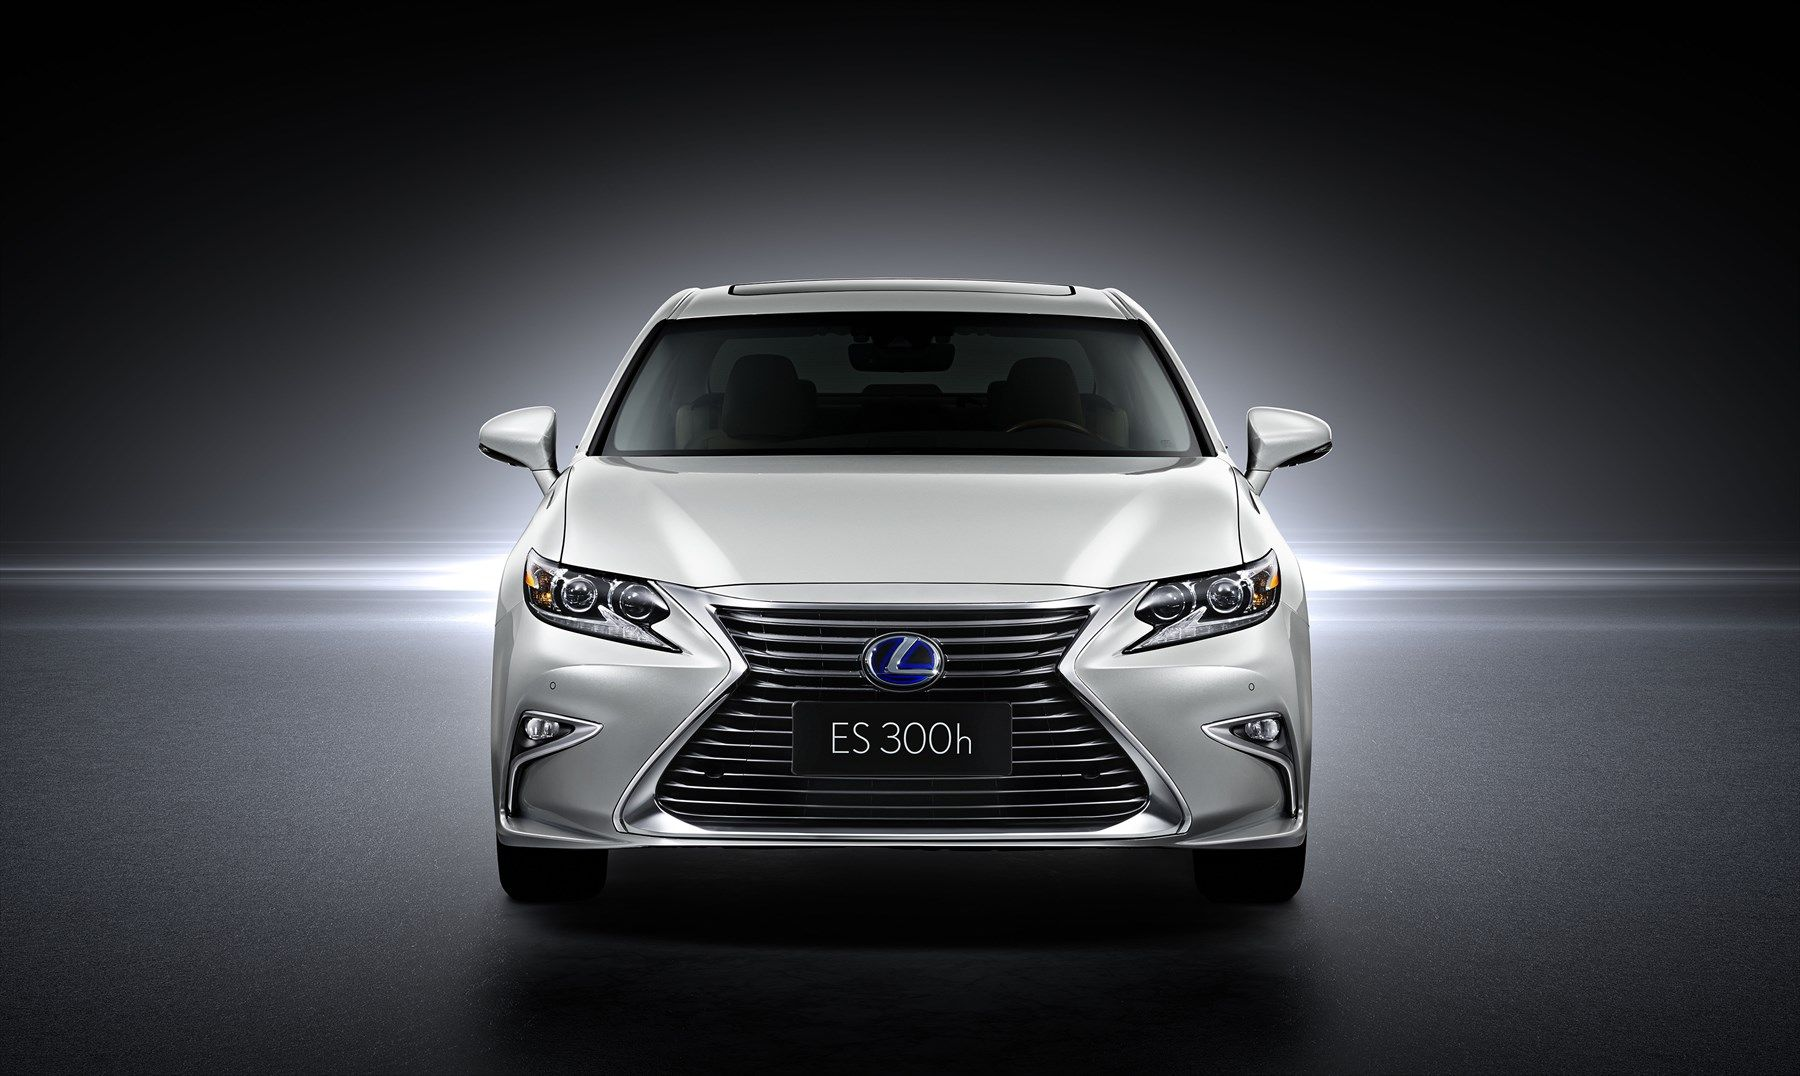 lexus-es-at-the-shanghai-international-motor-show-face